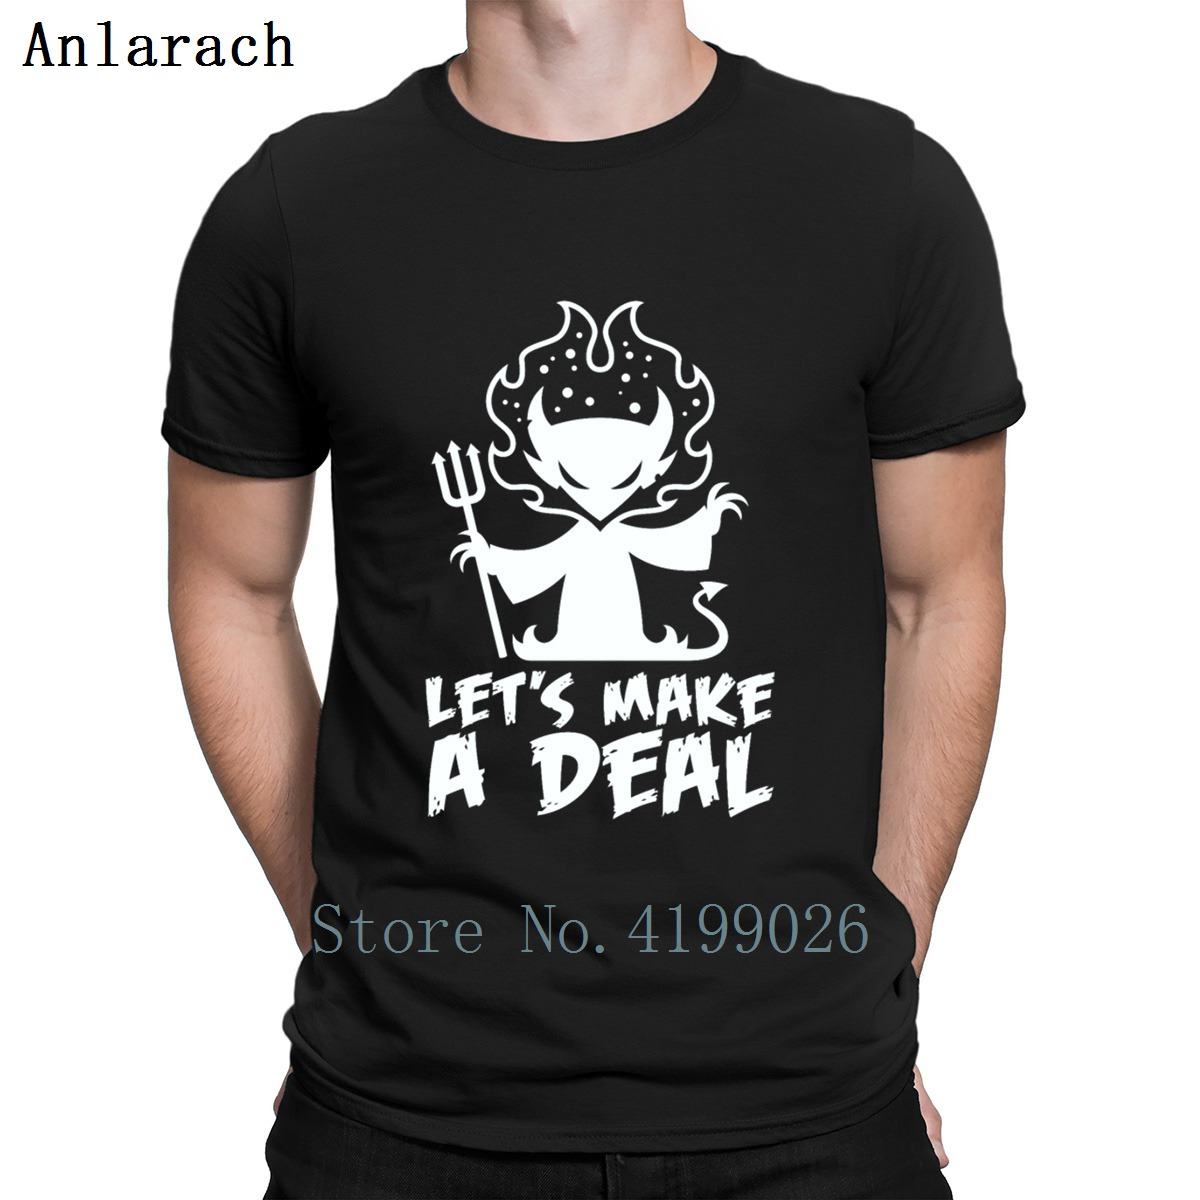 Deal With The Devil T Shirt Short Sleeve Funny Casual Round Neck Customized Interesting Spring Autumn Trend Homme Shirt image